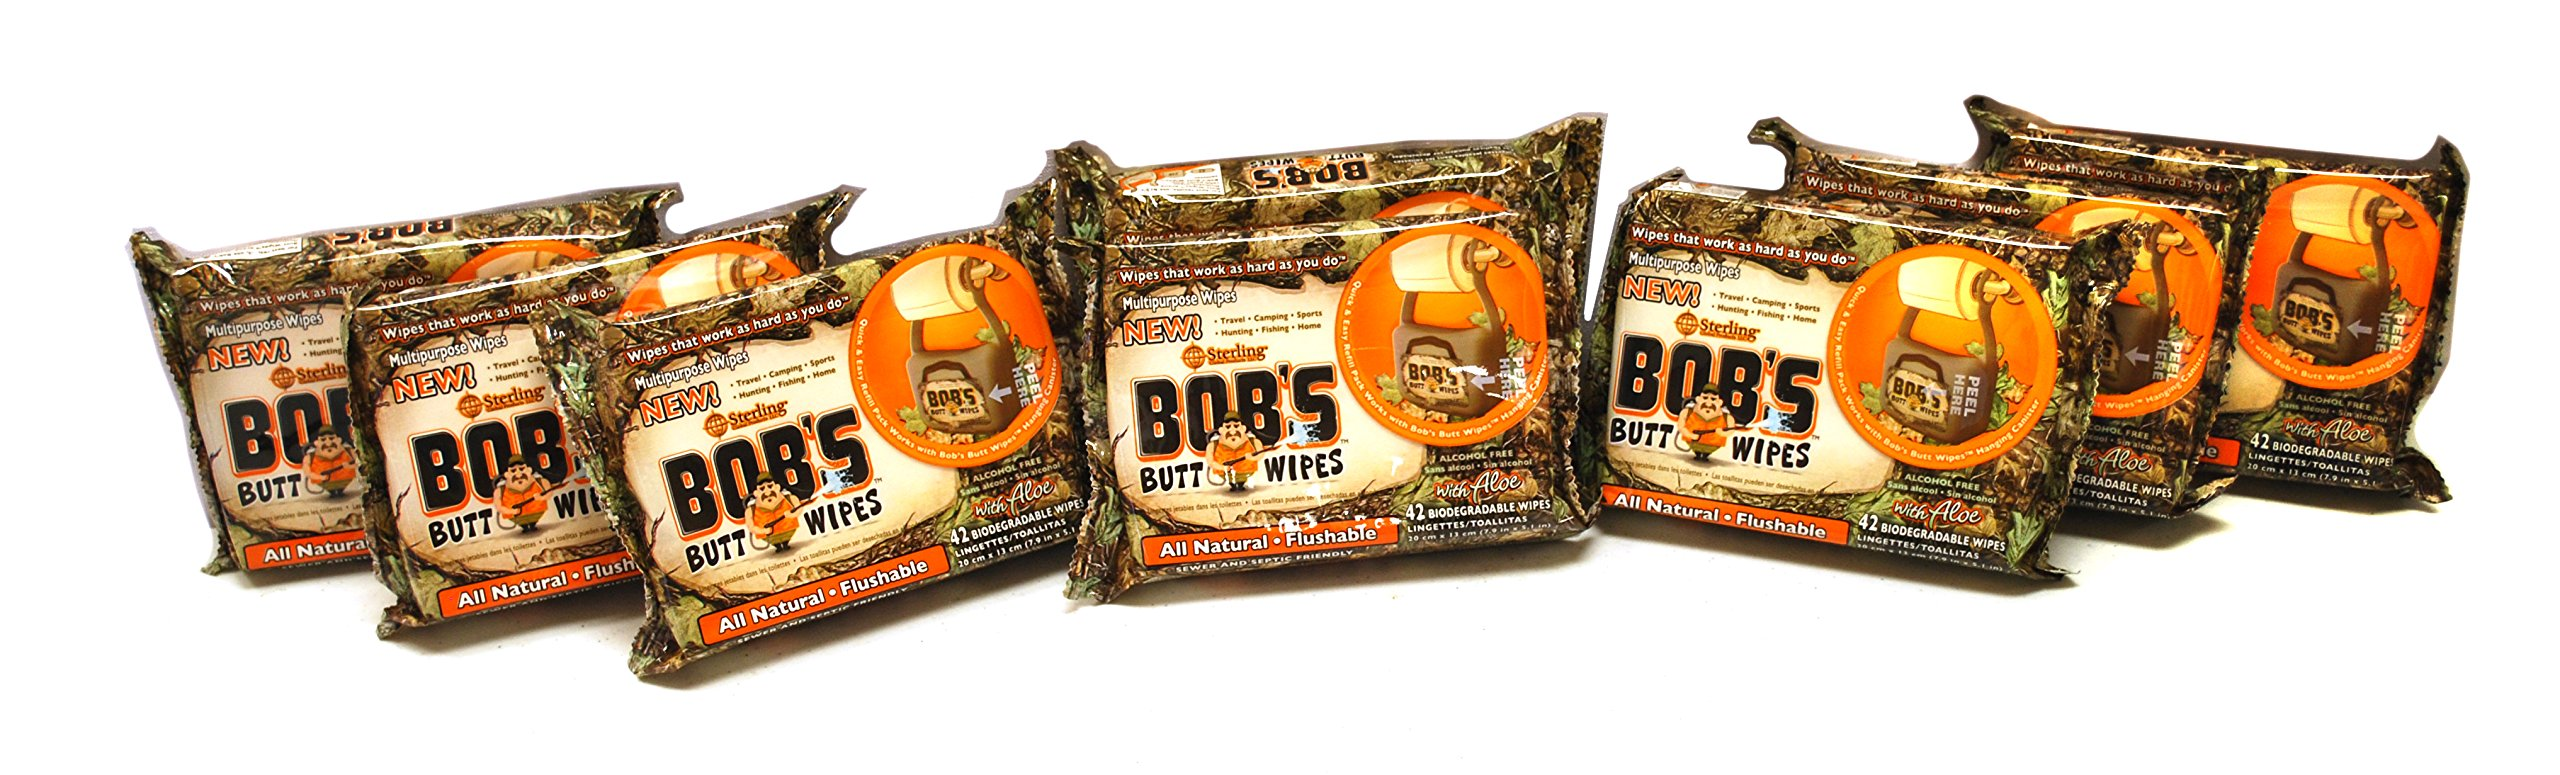 Bob's Butt Wipes 42ct Refill Only, 8 Pack, Rapid-Dispersing Unscented Flushable Personal Hygiene Wipes